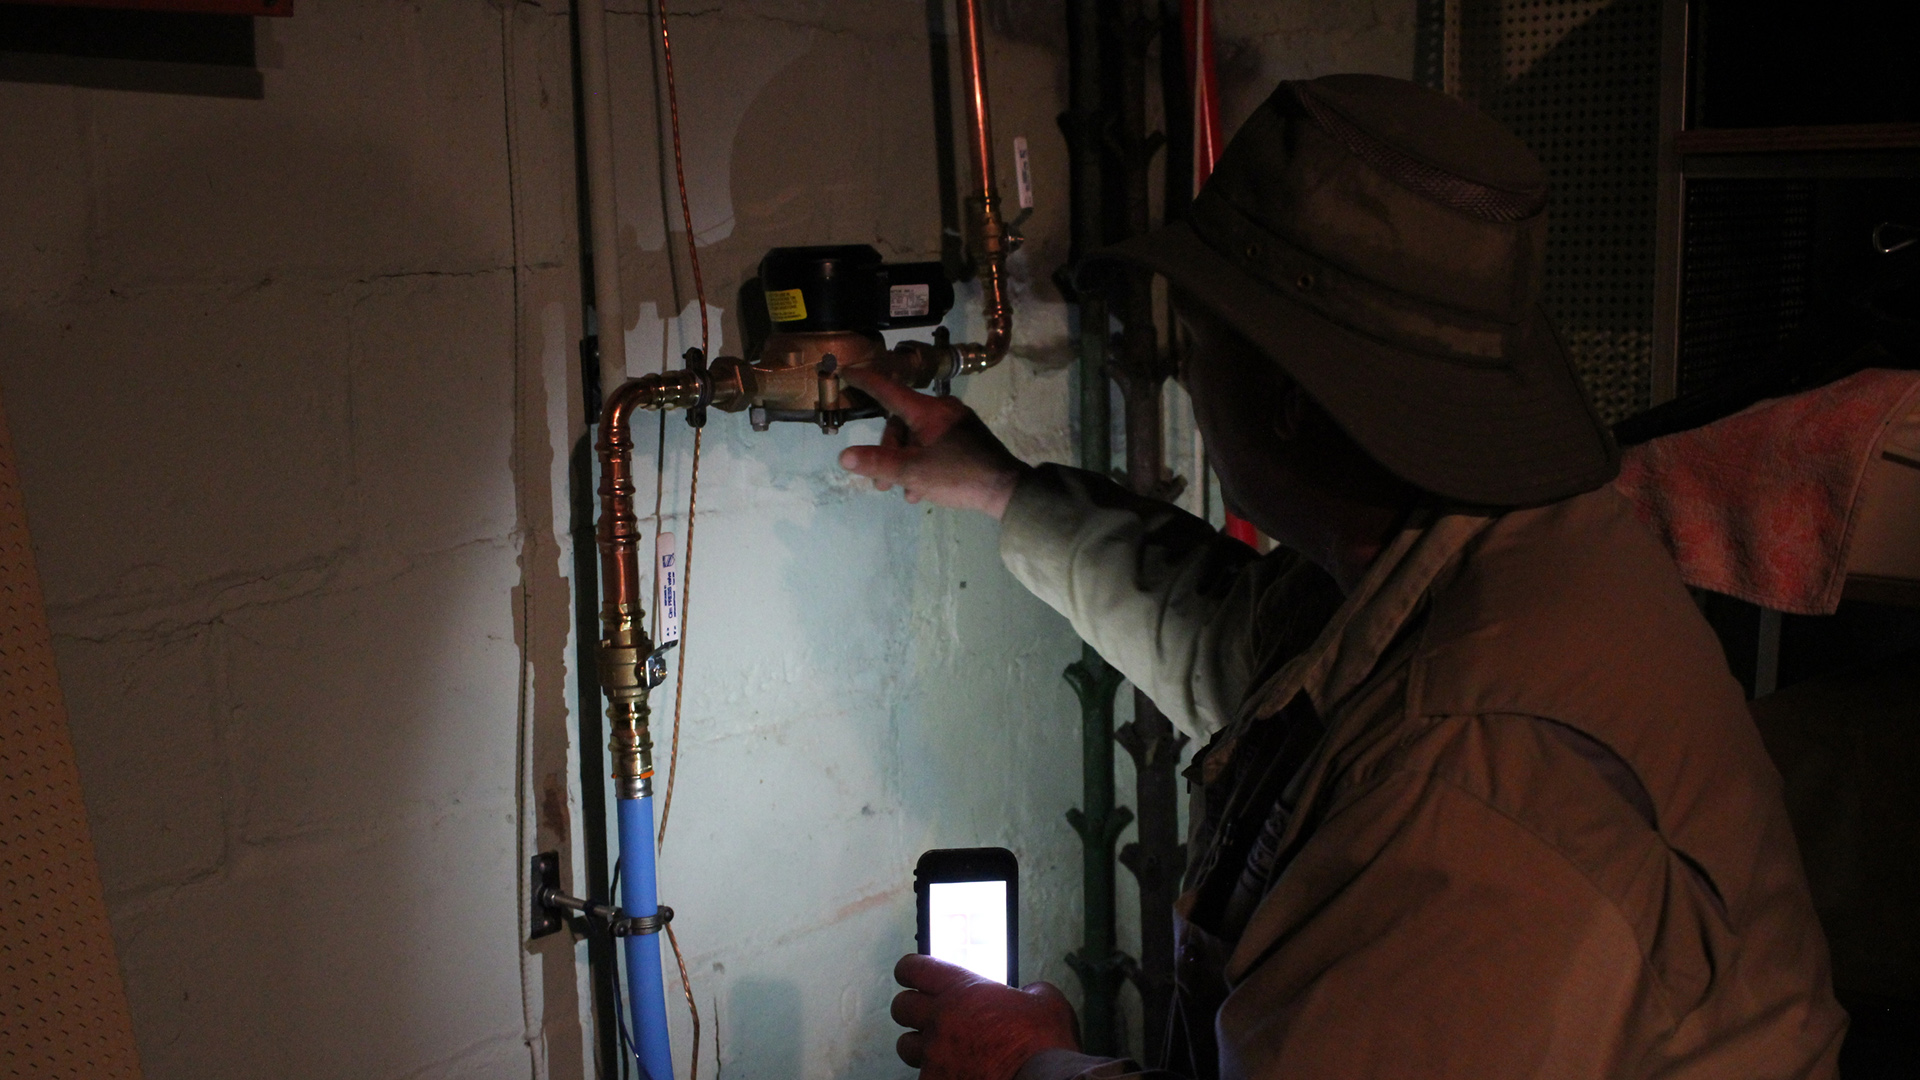 A worker examines a pipe connection in the dark basement of a house holding a smart phone for illumination.